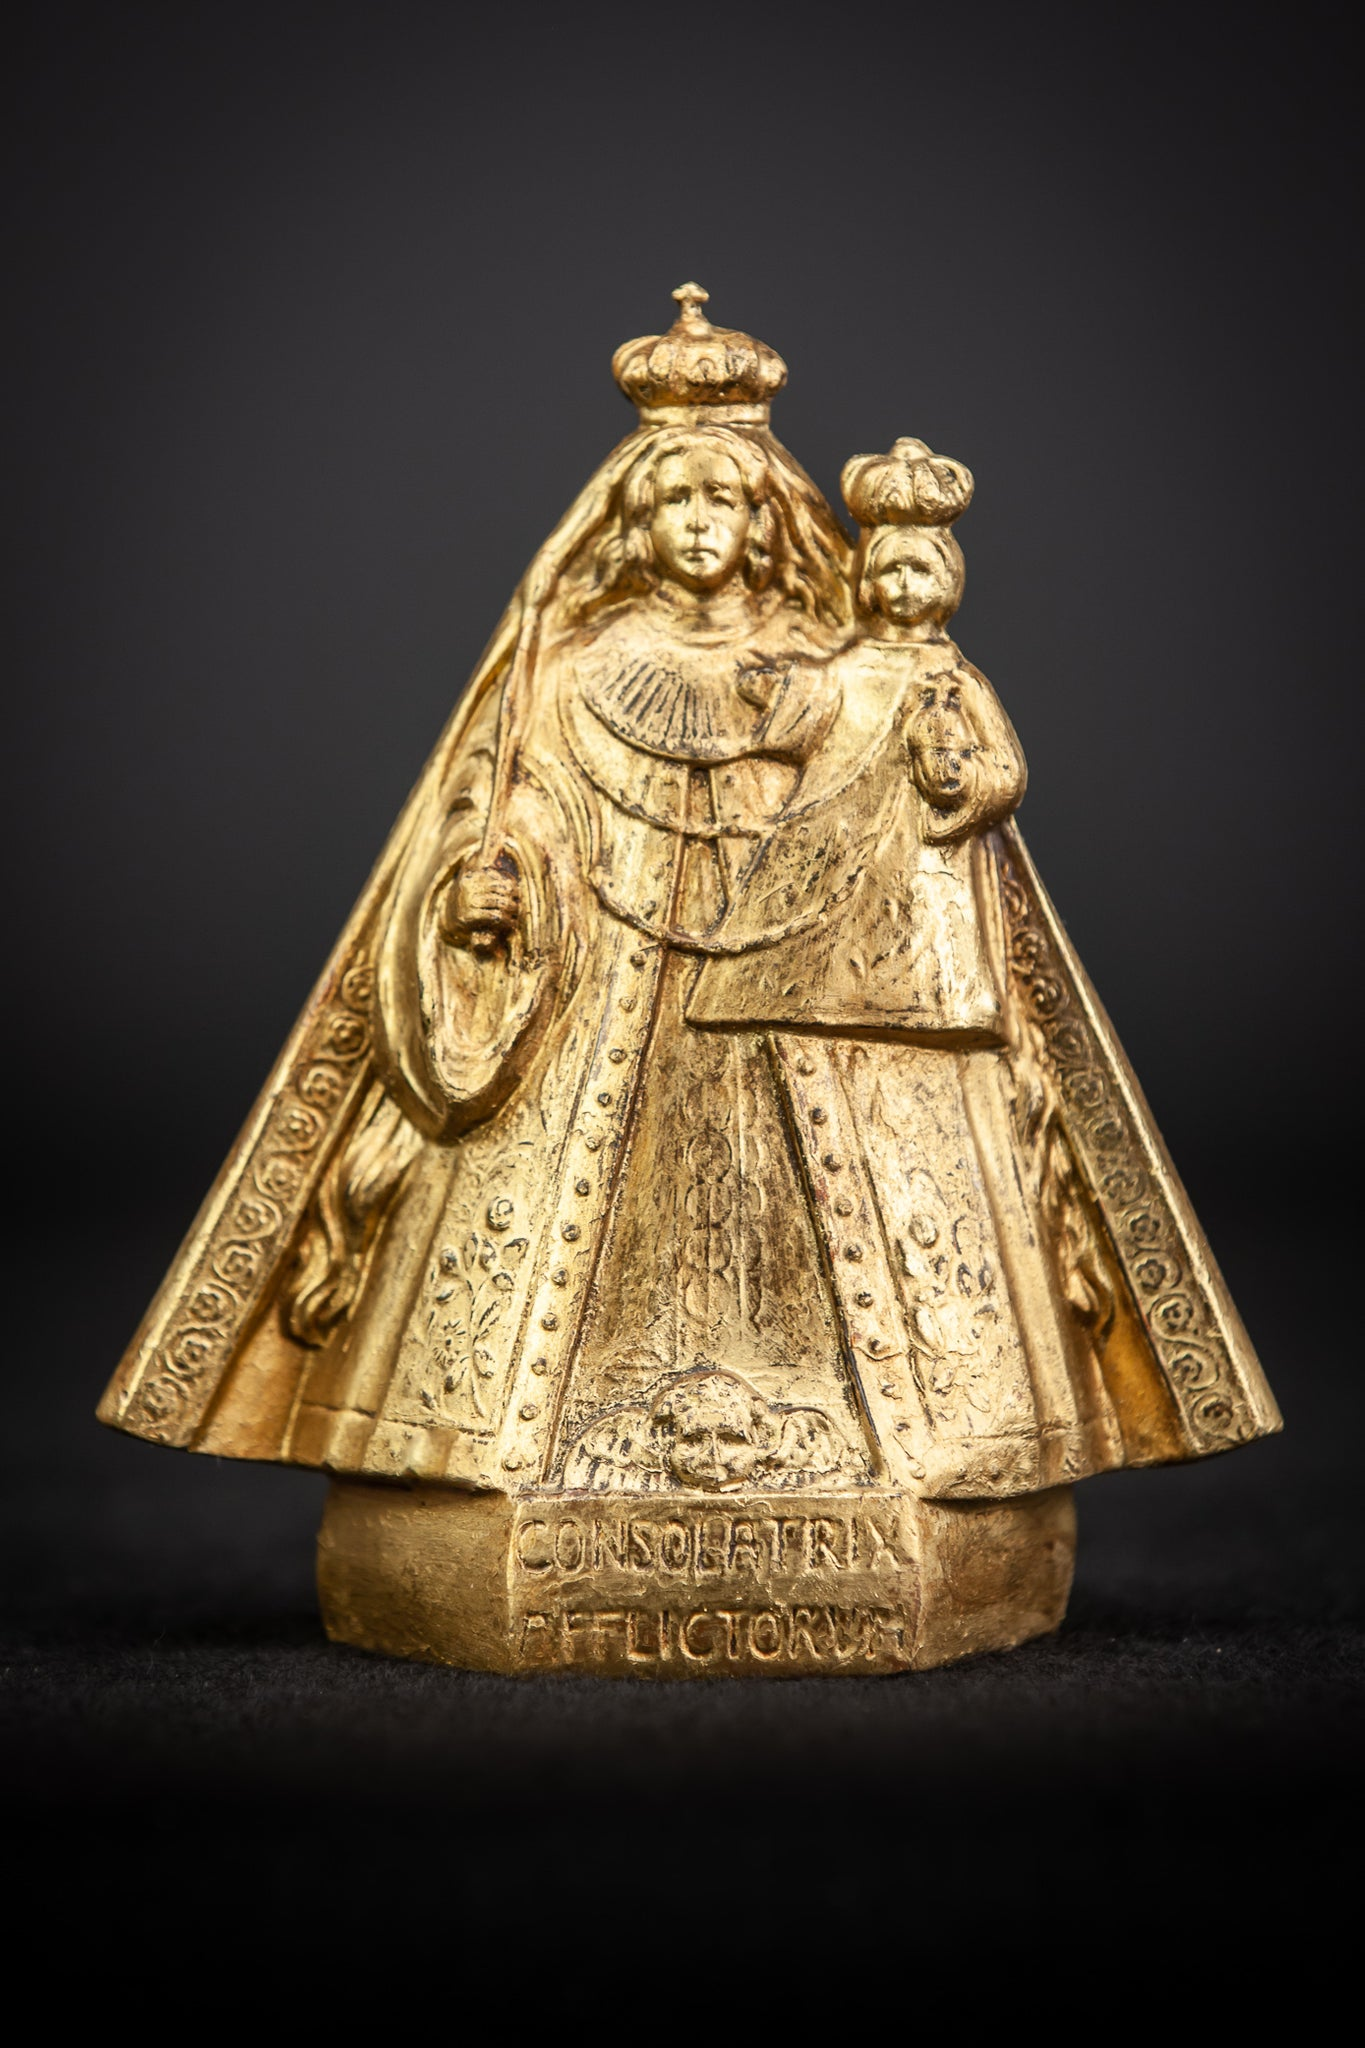 Our Lady of Consolation with Child Jesus Gilt Metal Figure